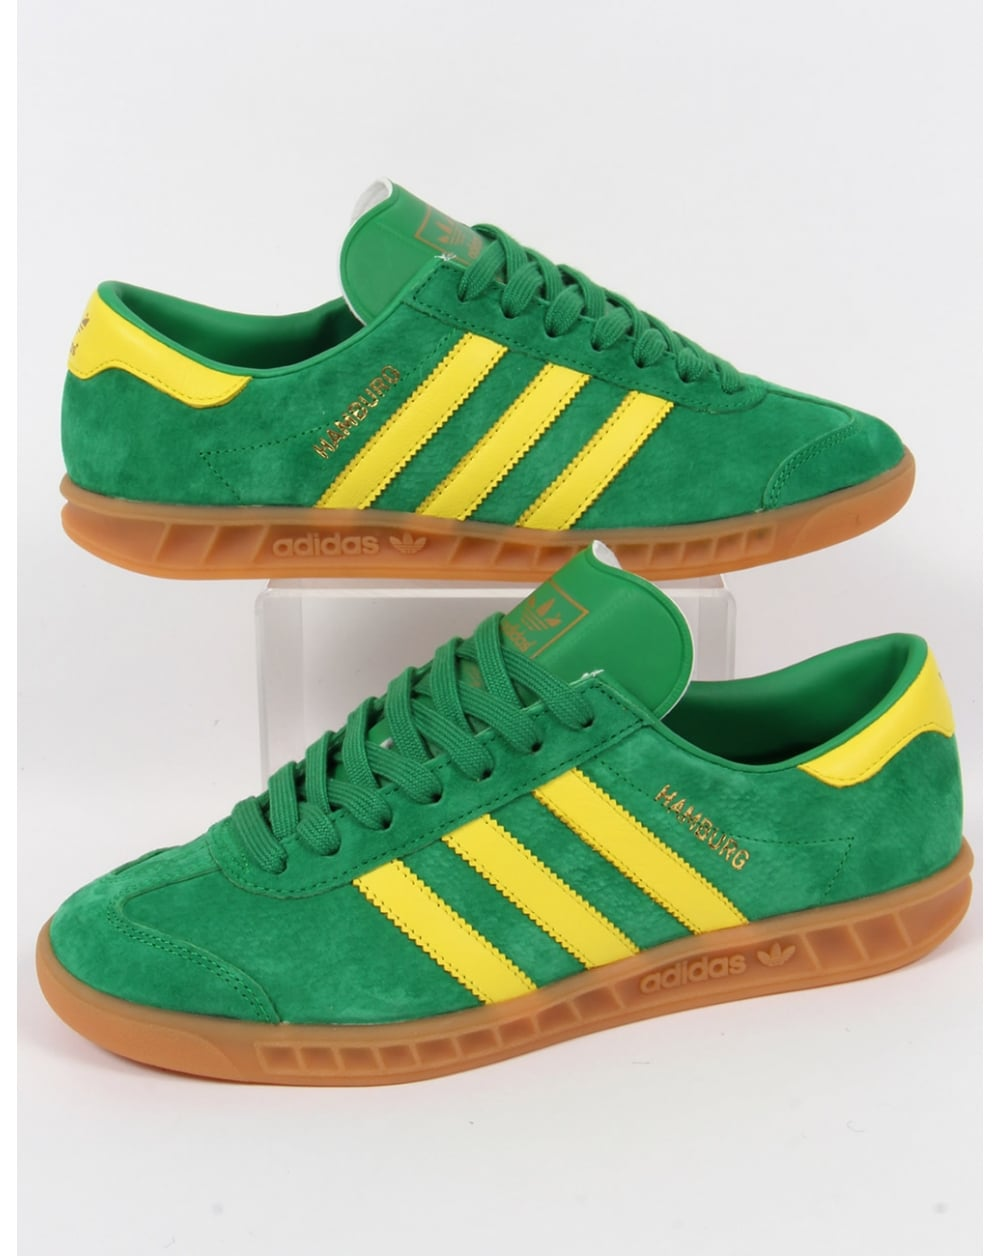 5c1d9ba57b45 Buy adidas dragon green yellow   OFF69% Discounted